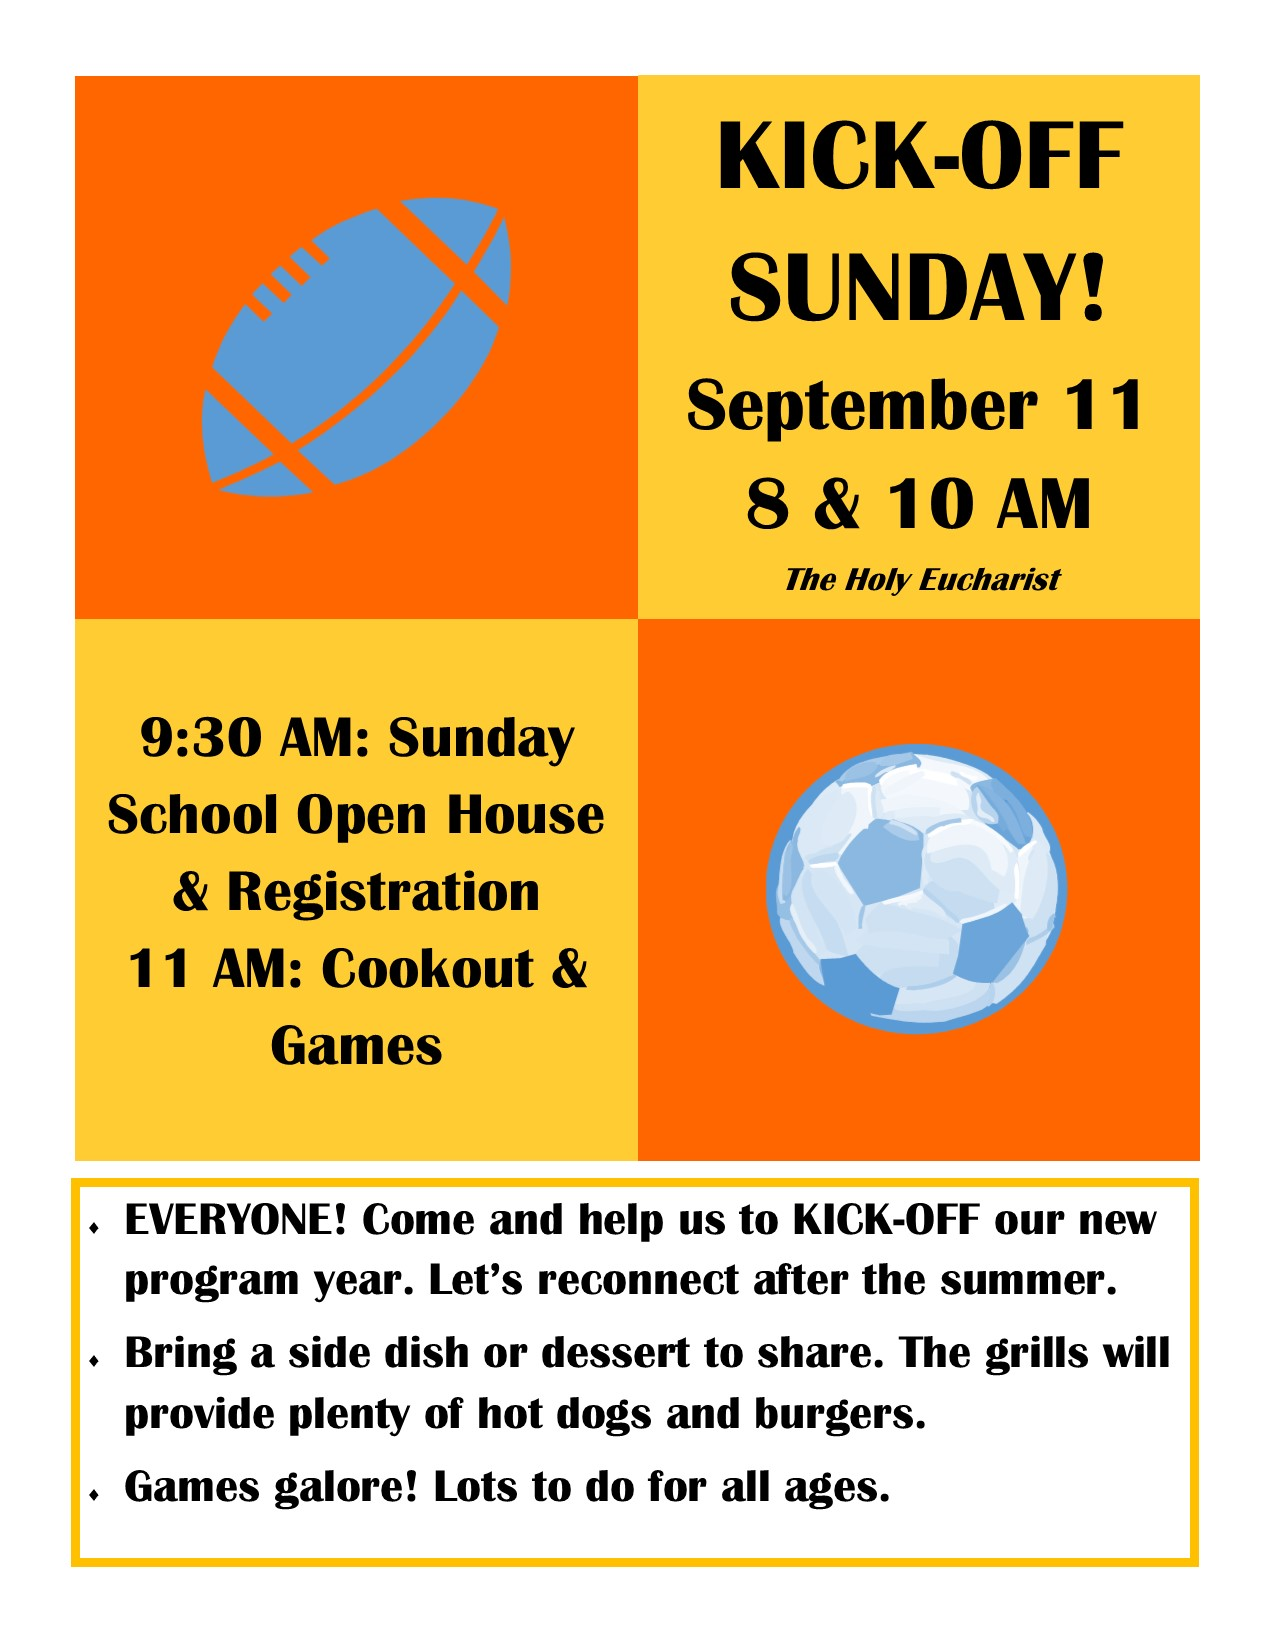 Kick-Off Sunday flyer